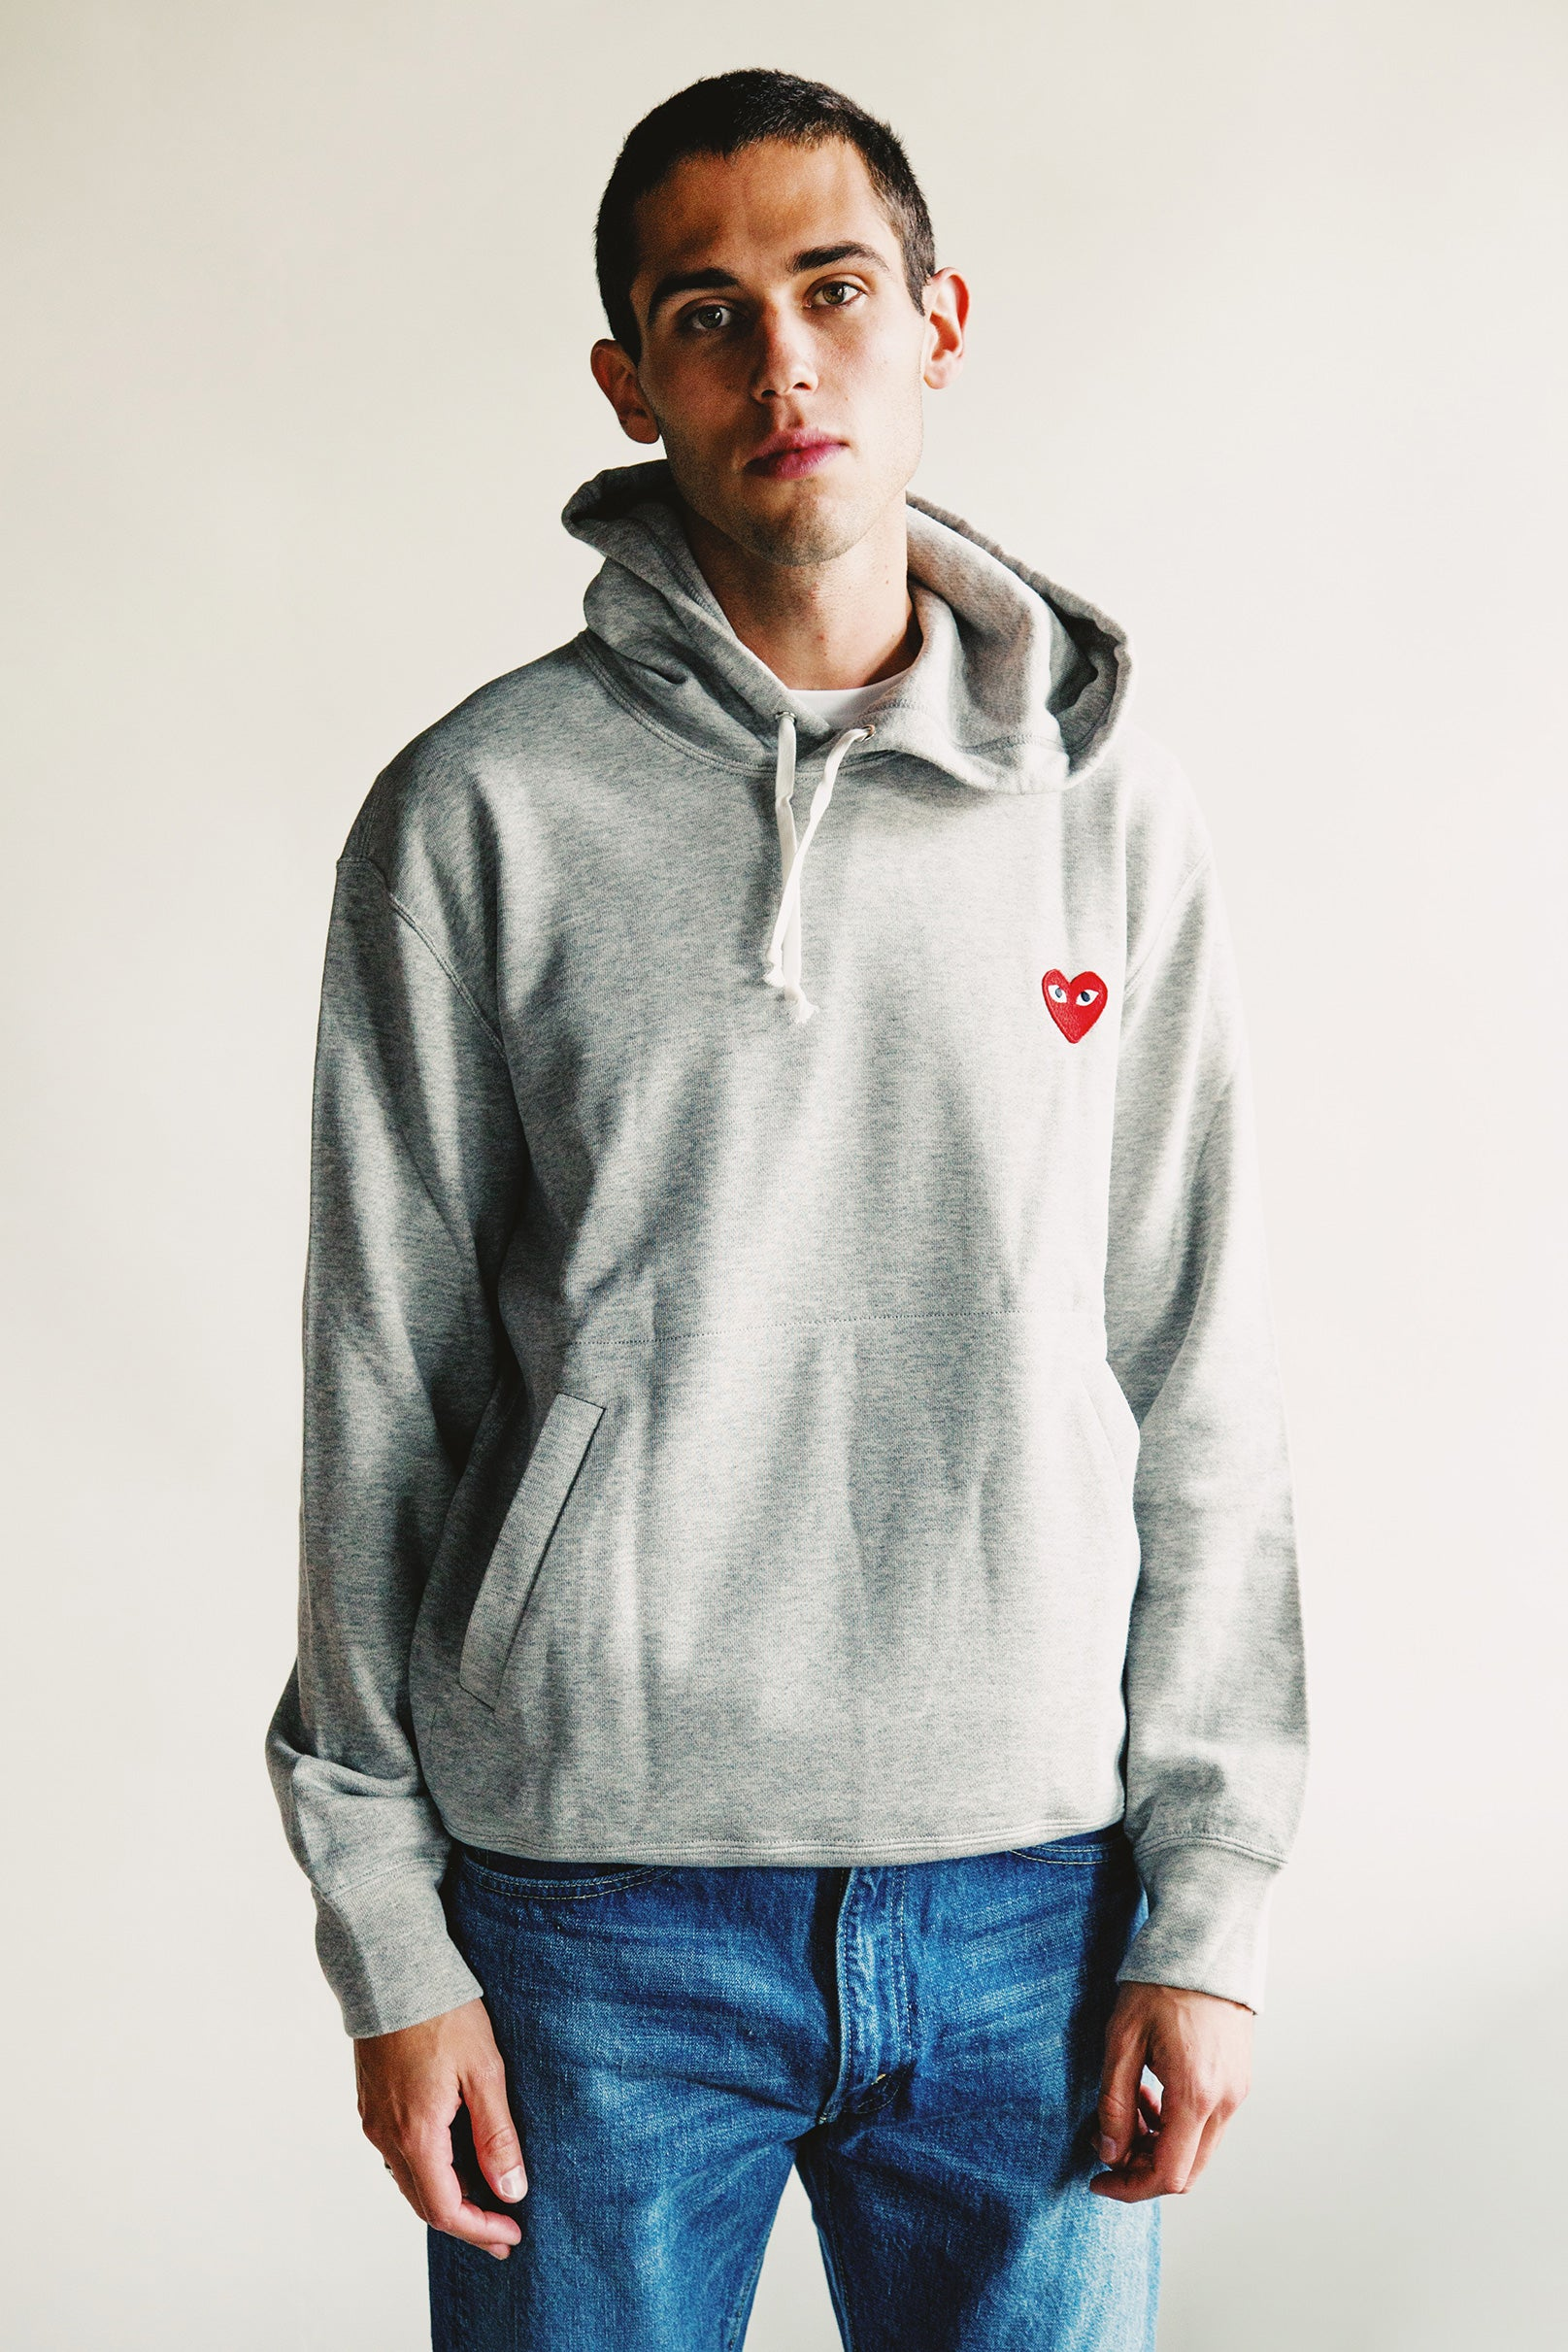 Comme des Garçons PLAY - Red Heart Hooded Sweatshirt- Grey - Canoe Club